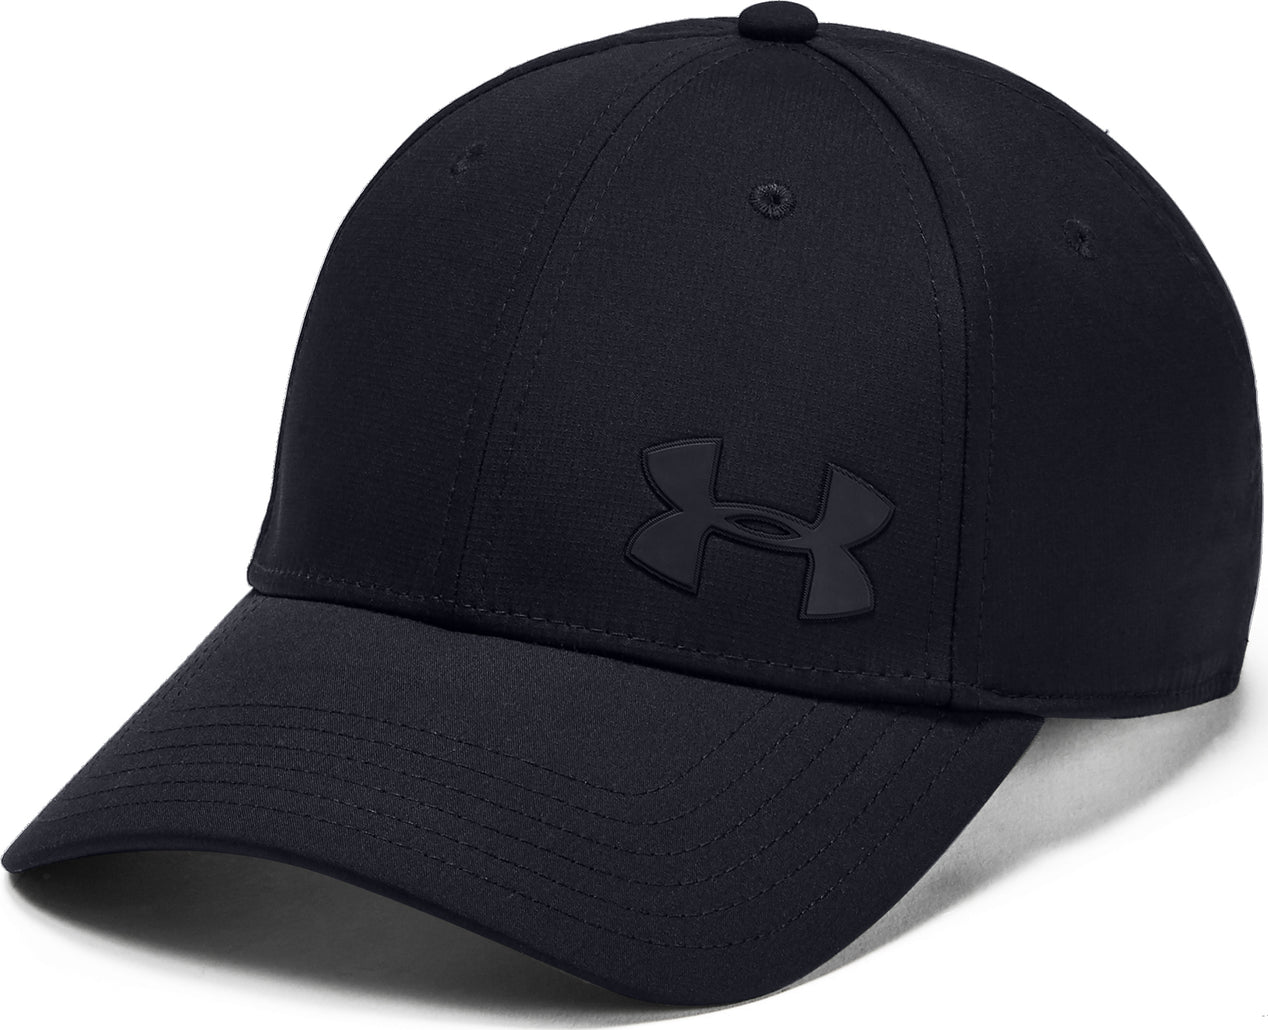 3b9c9bd8adc Under Armour Ua Headline 3.0 Cap - Men s